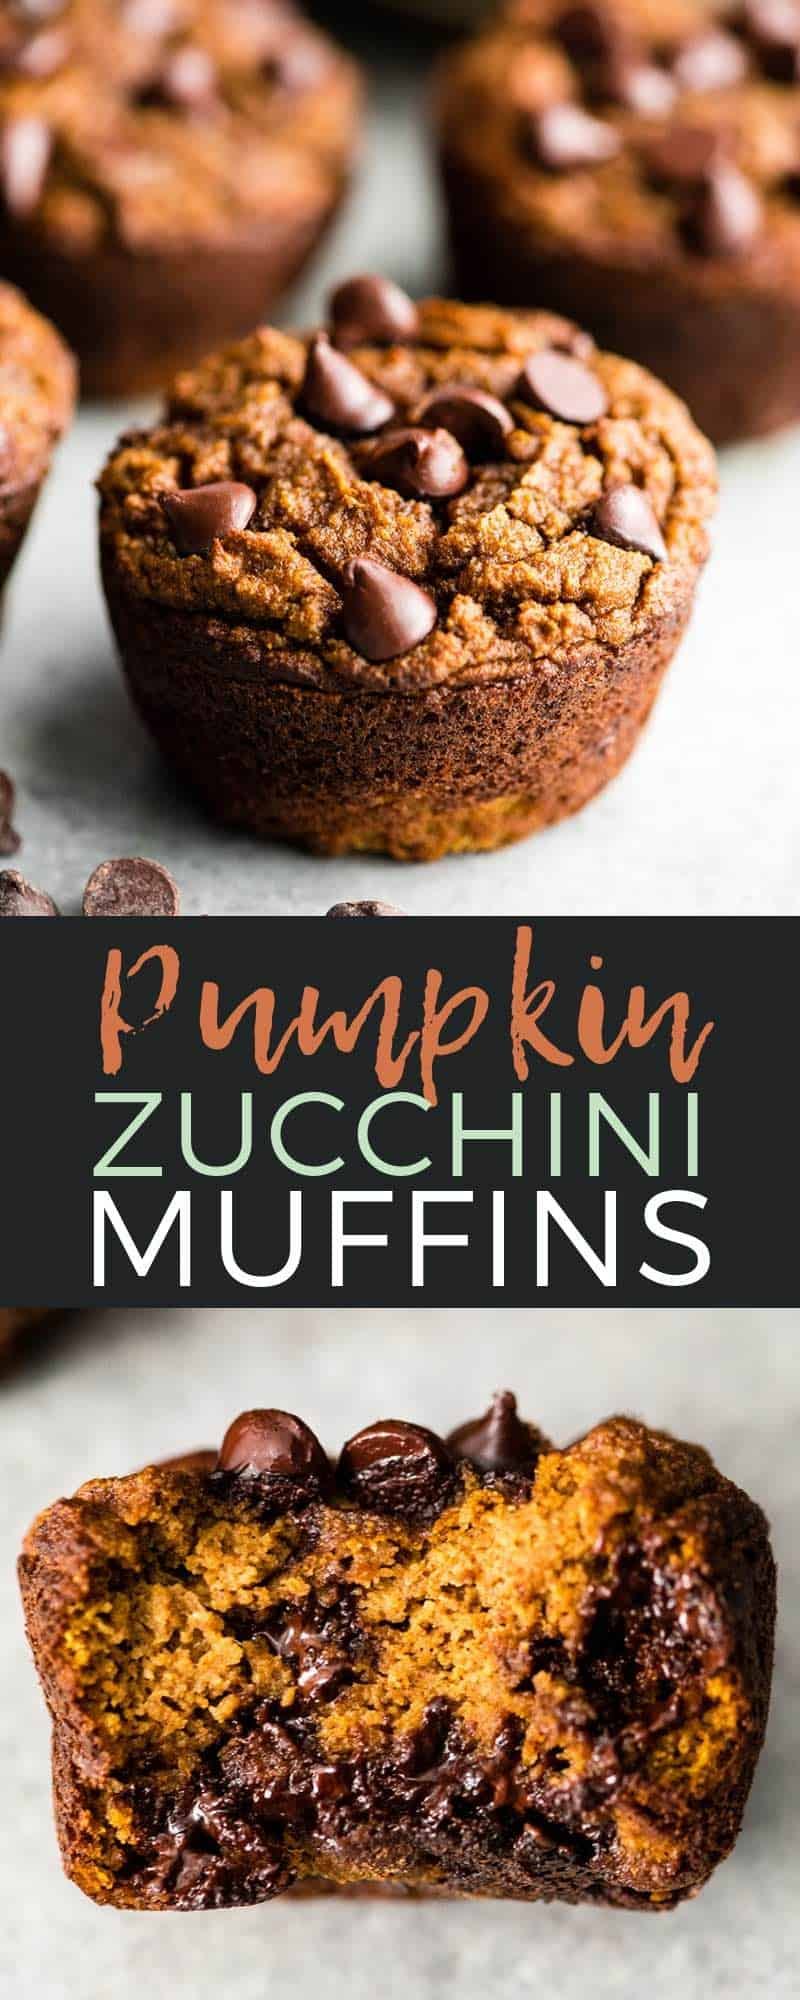 This Paleo Pumpkin Zucchini Muffins Recipe is a healthy breakfast that's easy to make! These muffins are gluten-free, dairy-free and can easily be made into healthy pumpkin zucchini bread! #paleo #glutenfree #dairyfree #zucchini #pumpkin #muffins #healthy